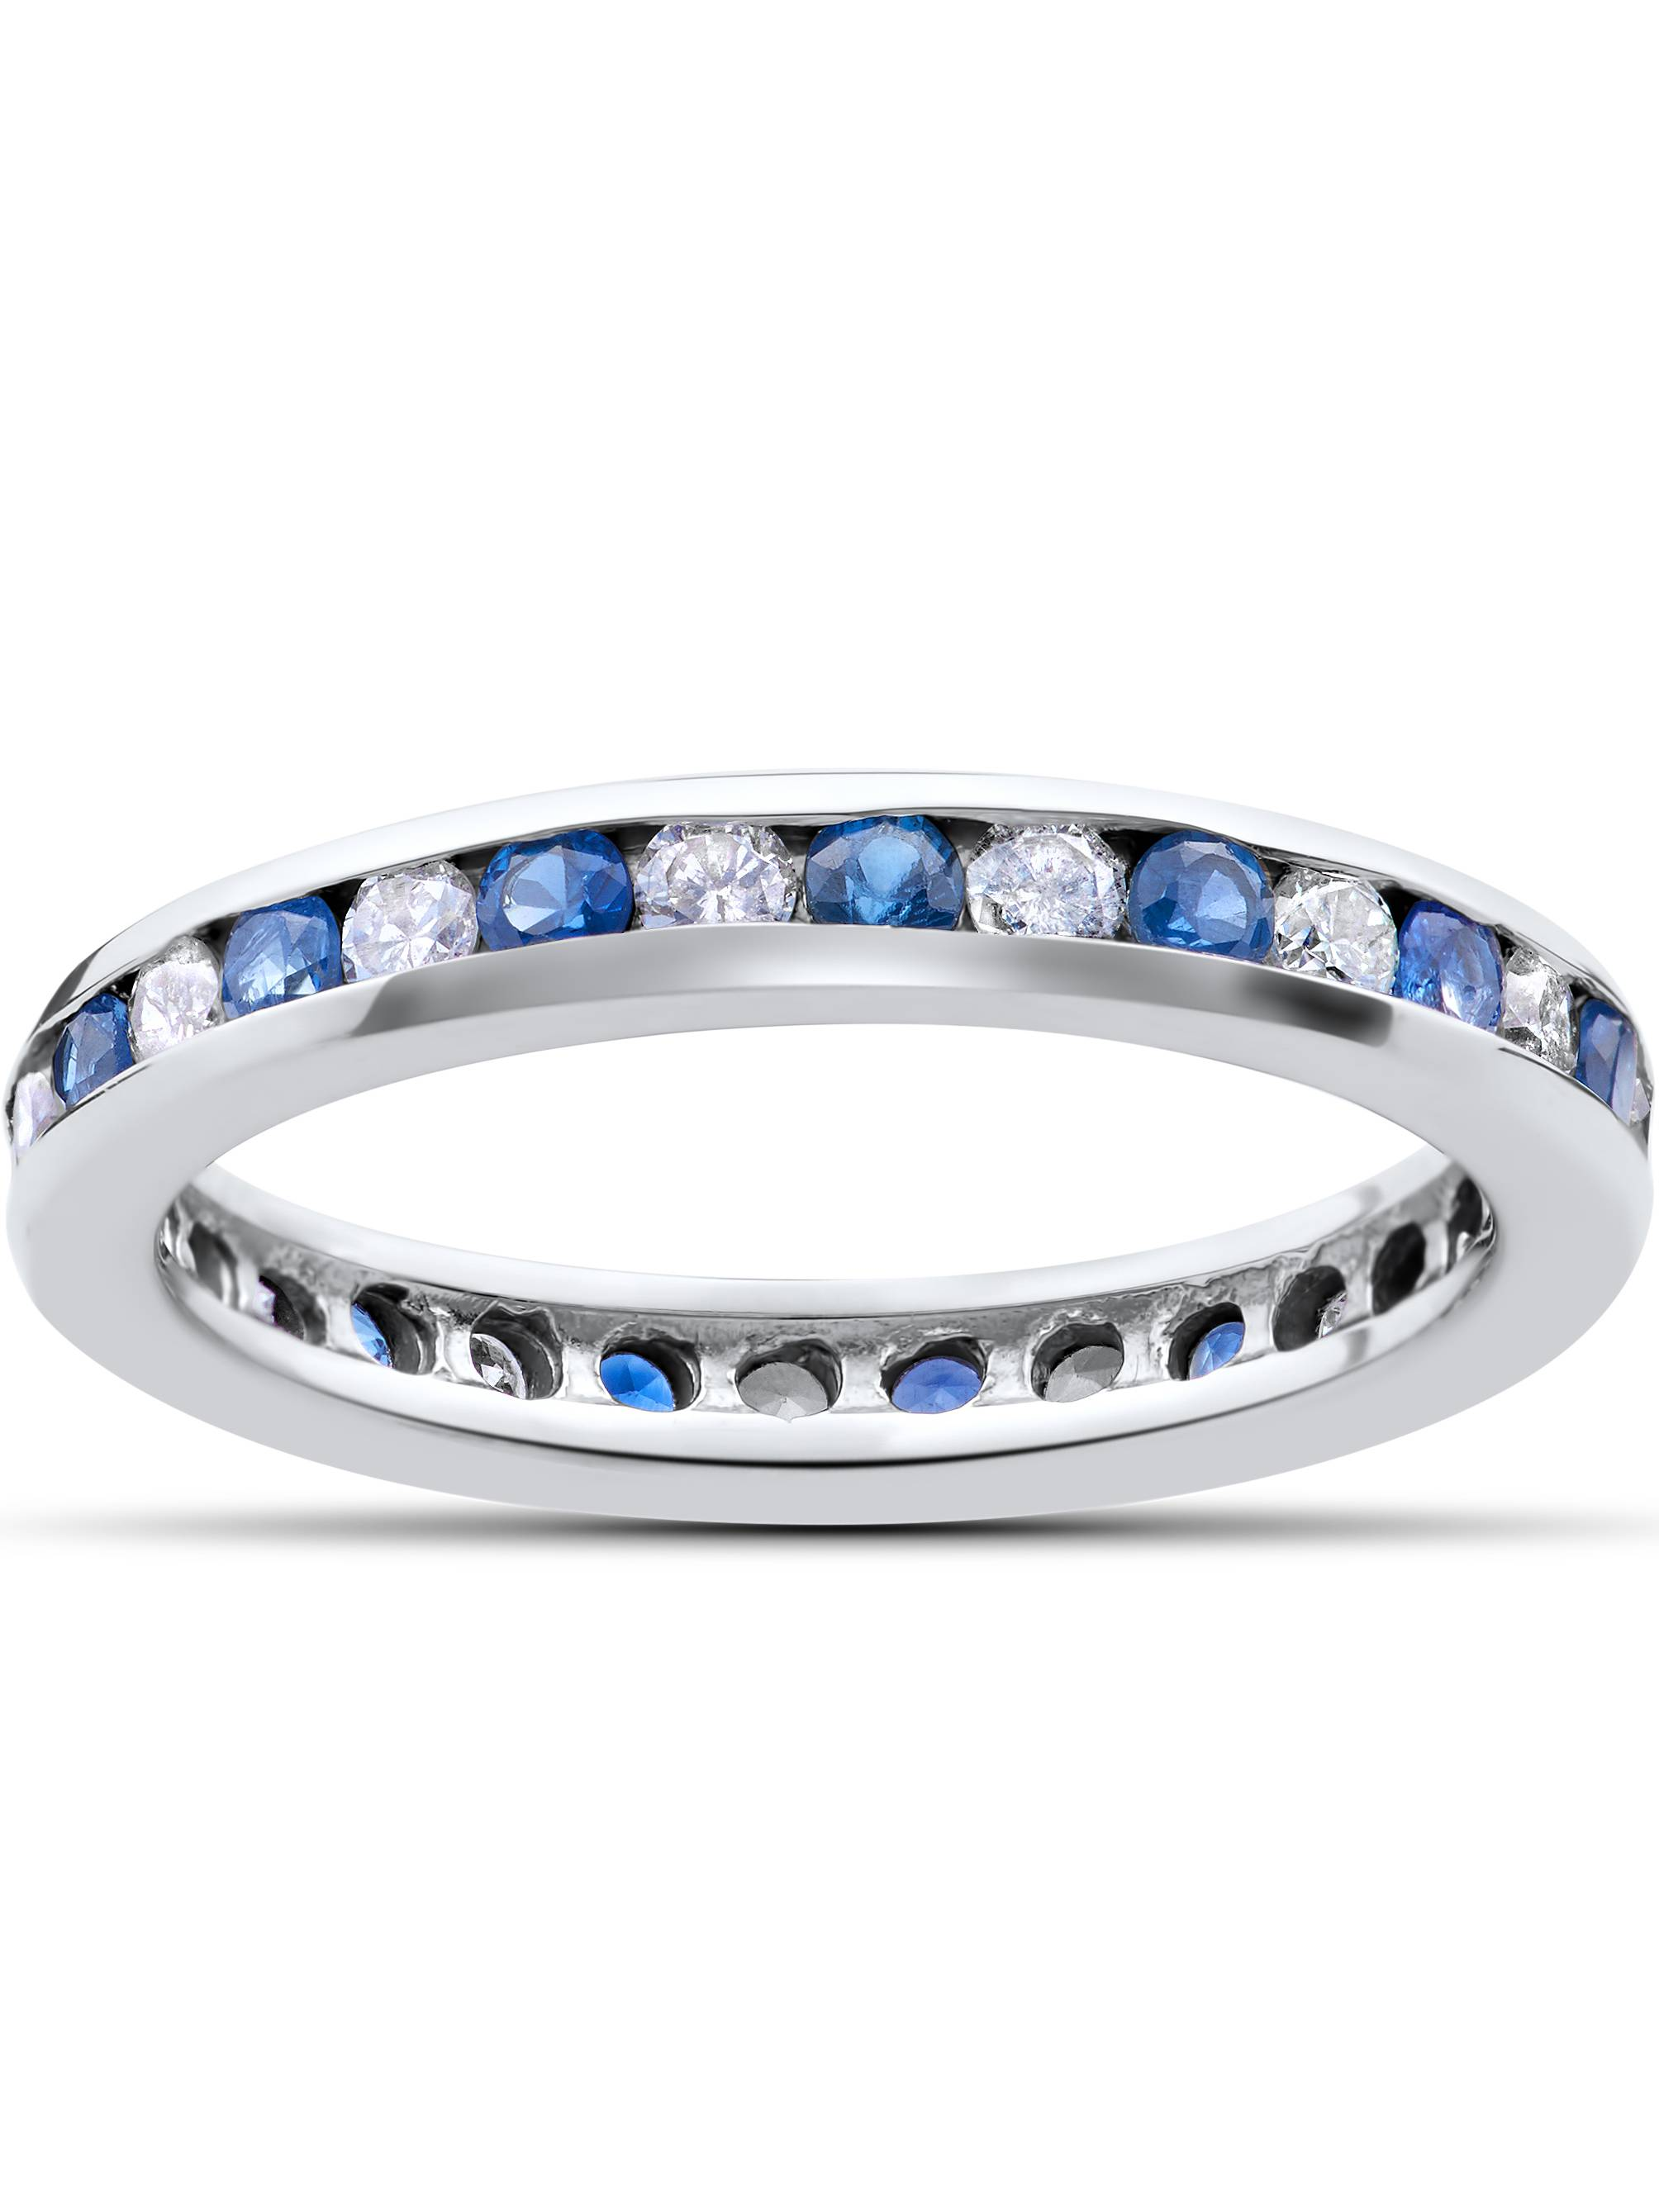 1 Ct Blue Sapphire & Diamond Channel Set Eternity Wedding Ring 14K White Gold by Pompeii3